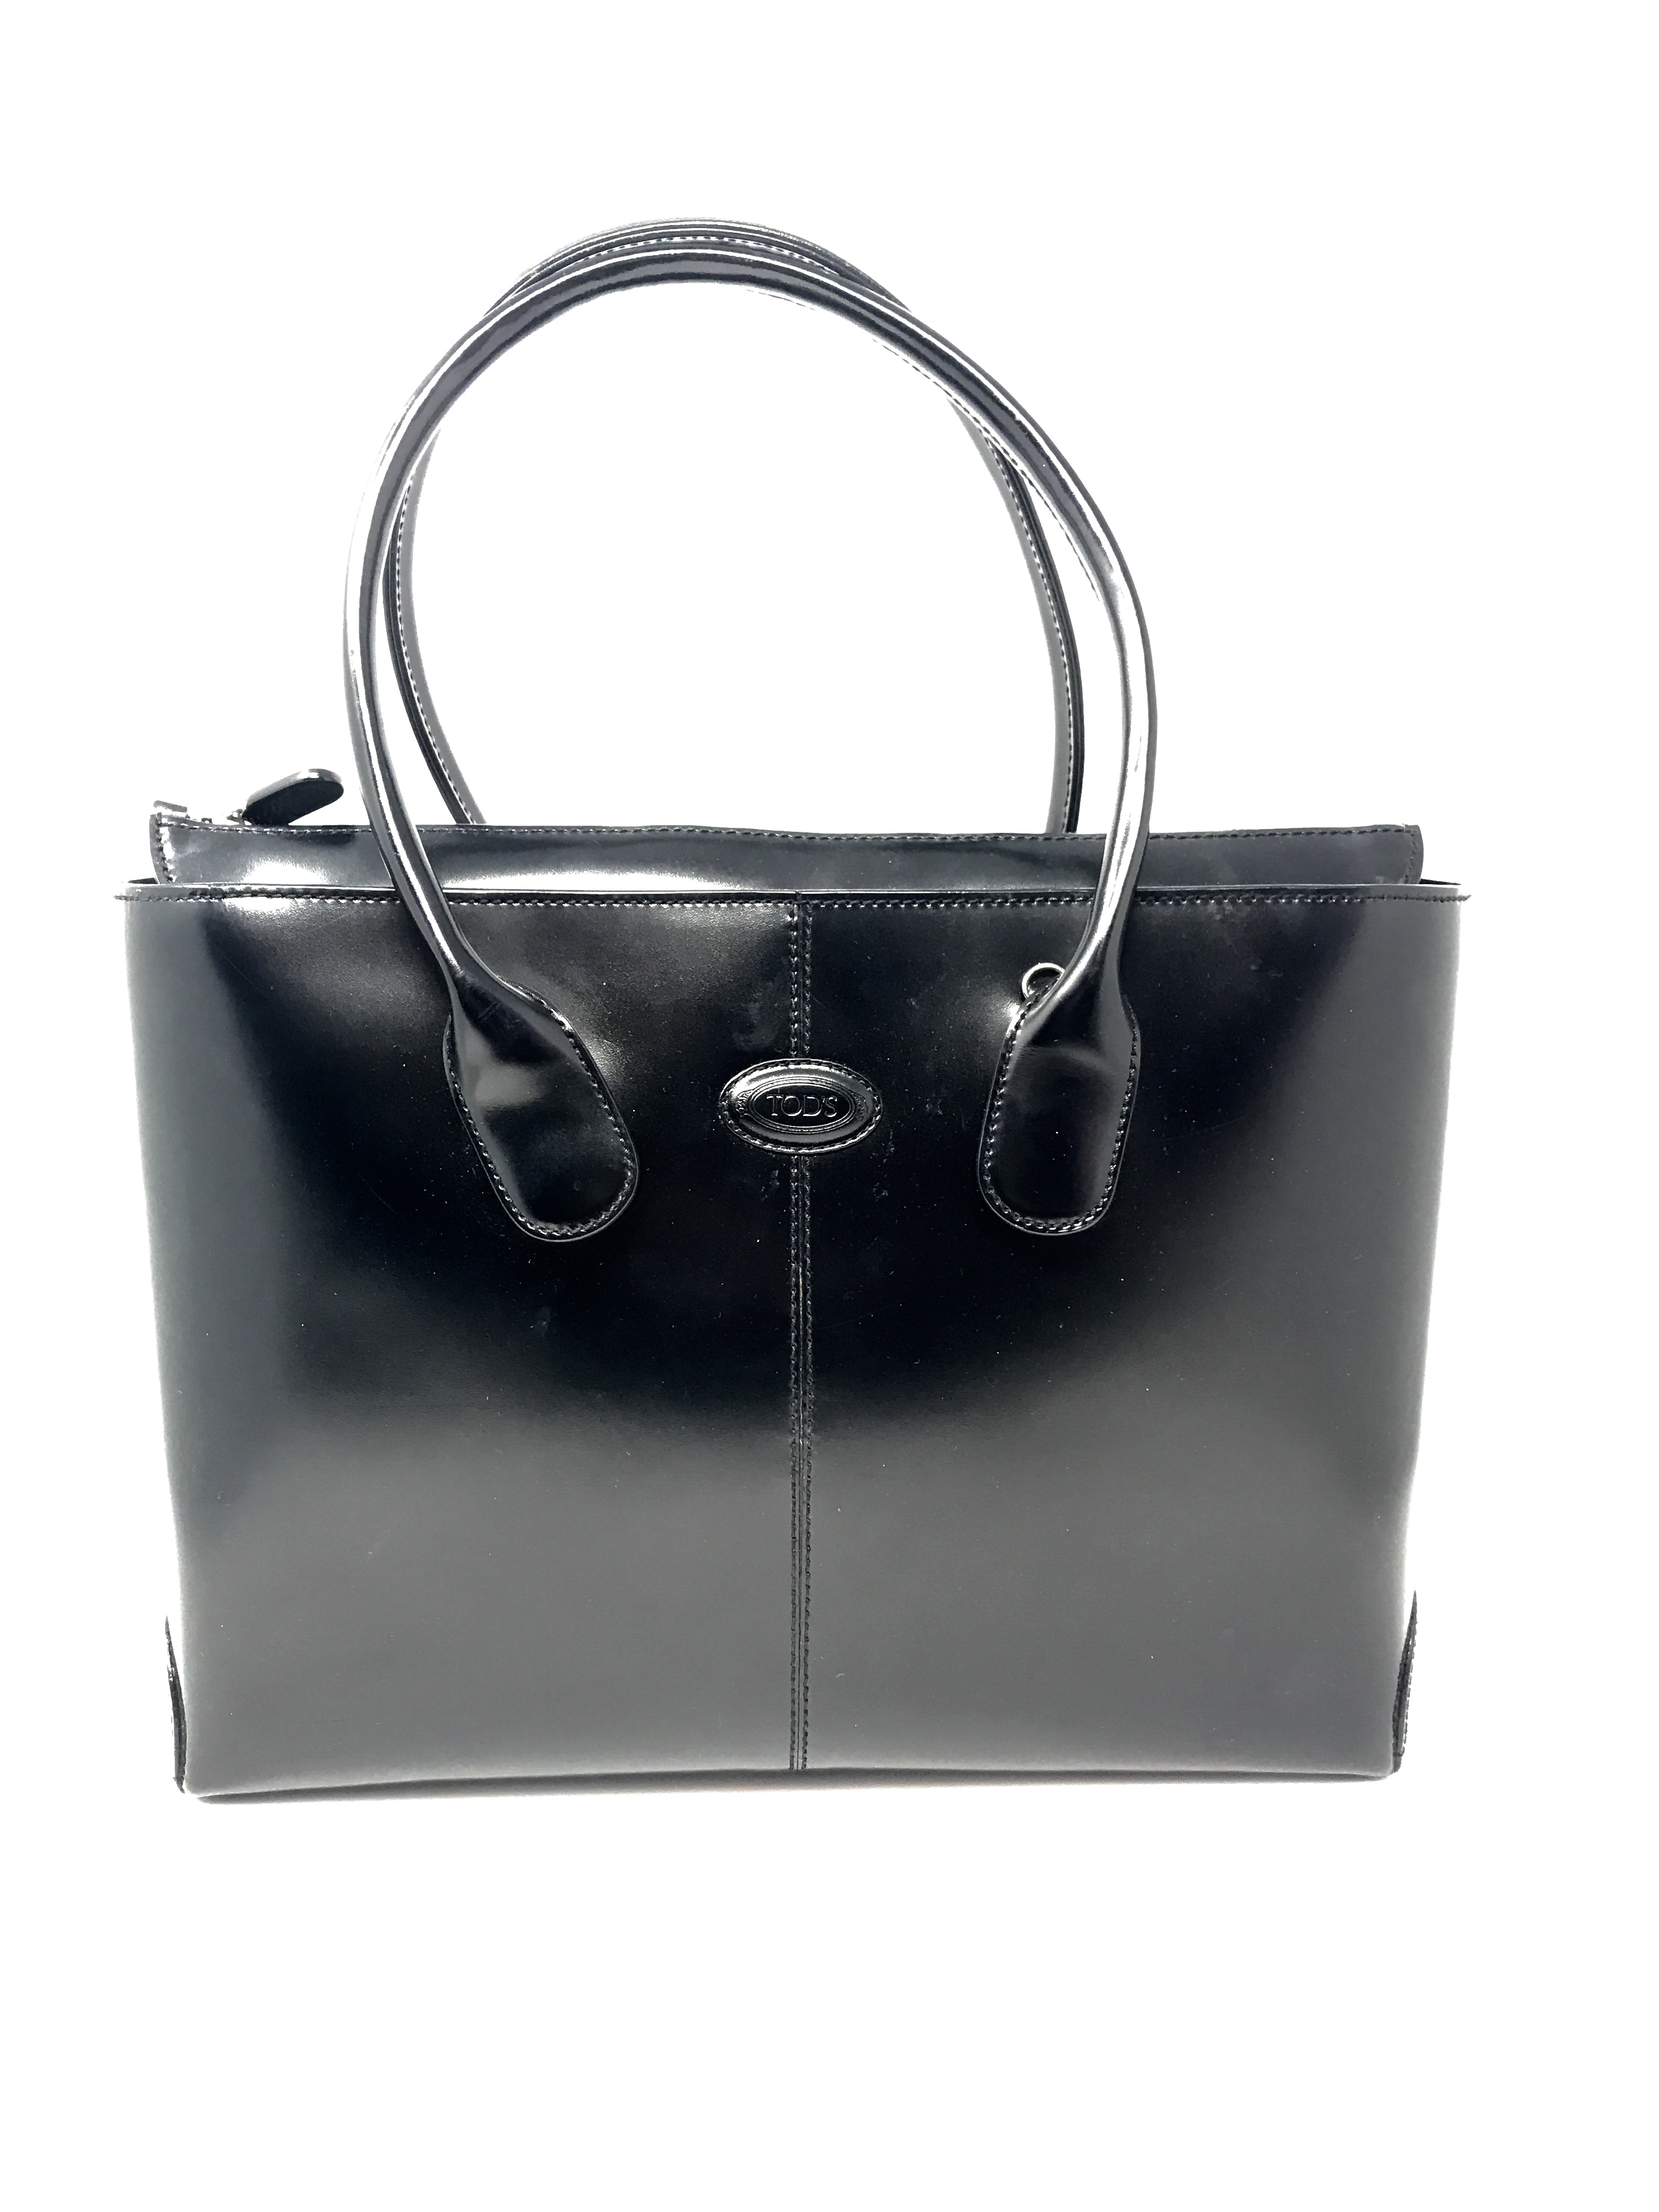 Tods black Purses, Handbags Price: $267.99